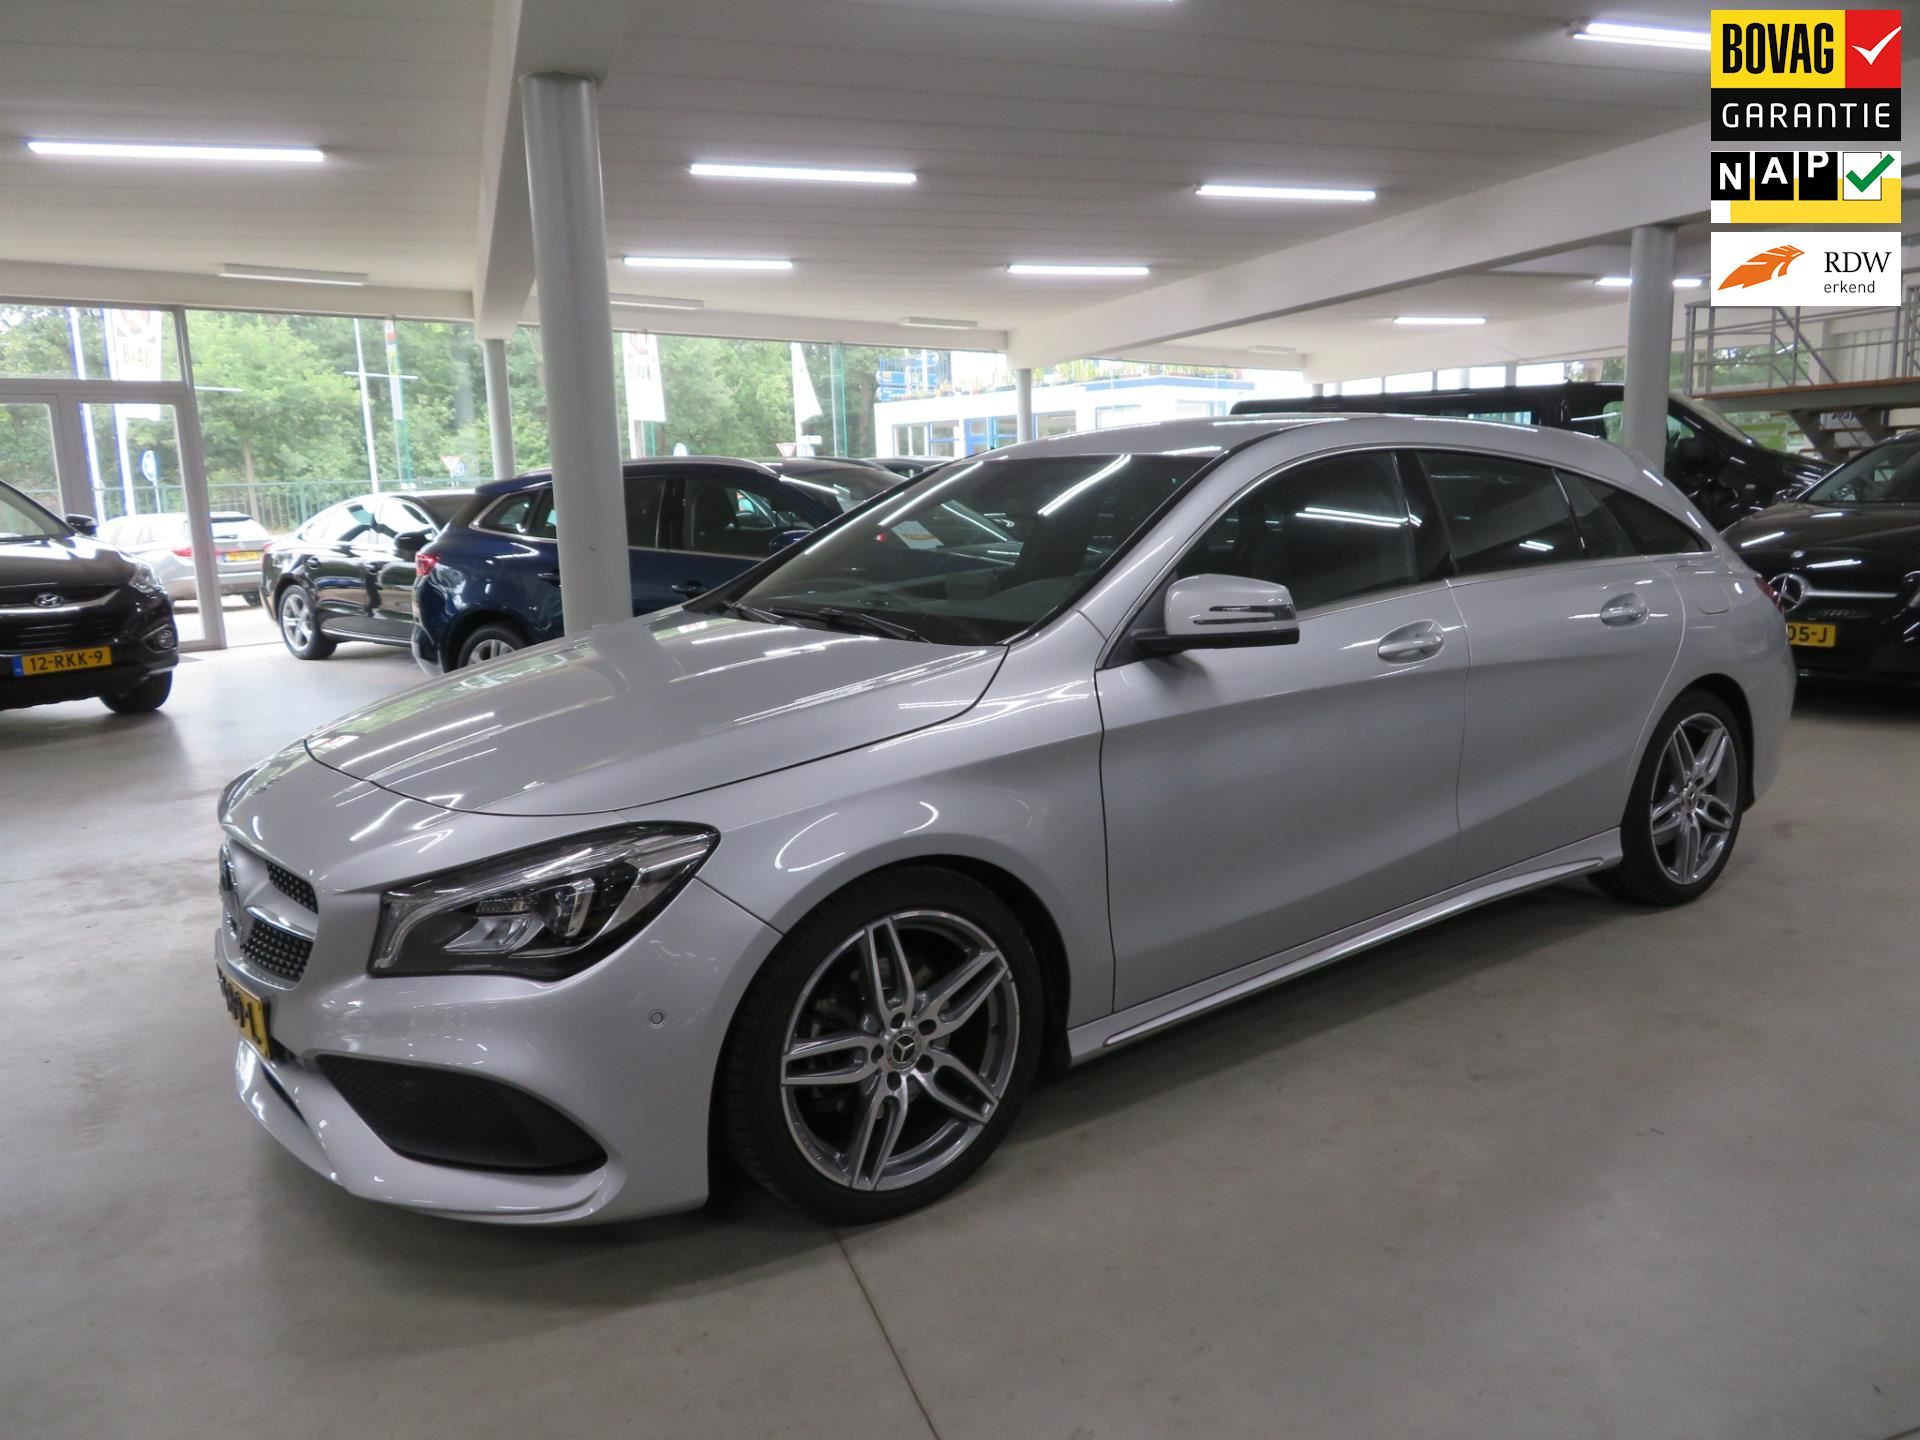 Mercedes-Benz CLA-klasse Shooting Brake occasion - Automobielbedrijf de Groot